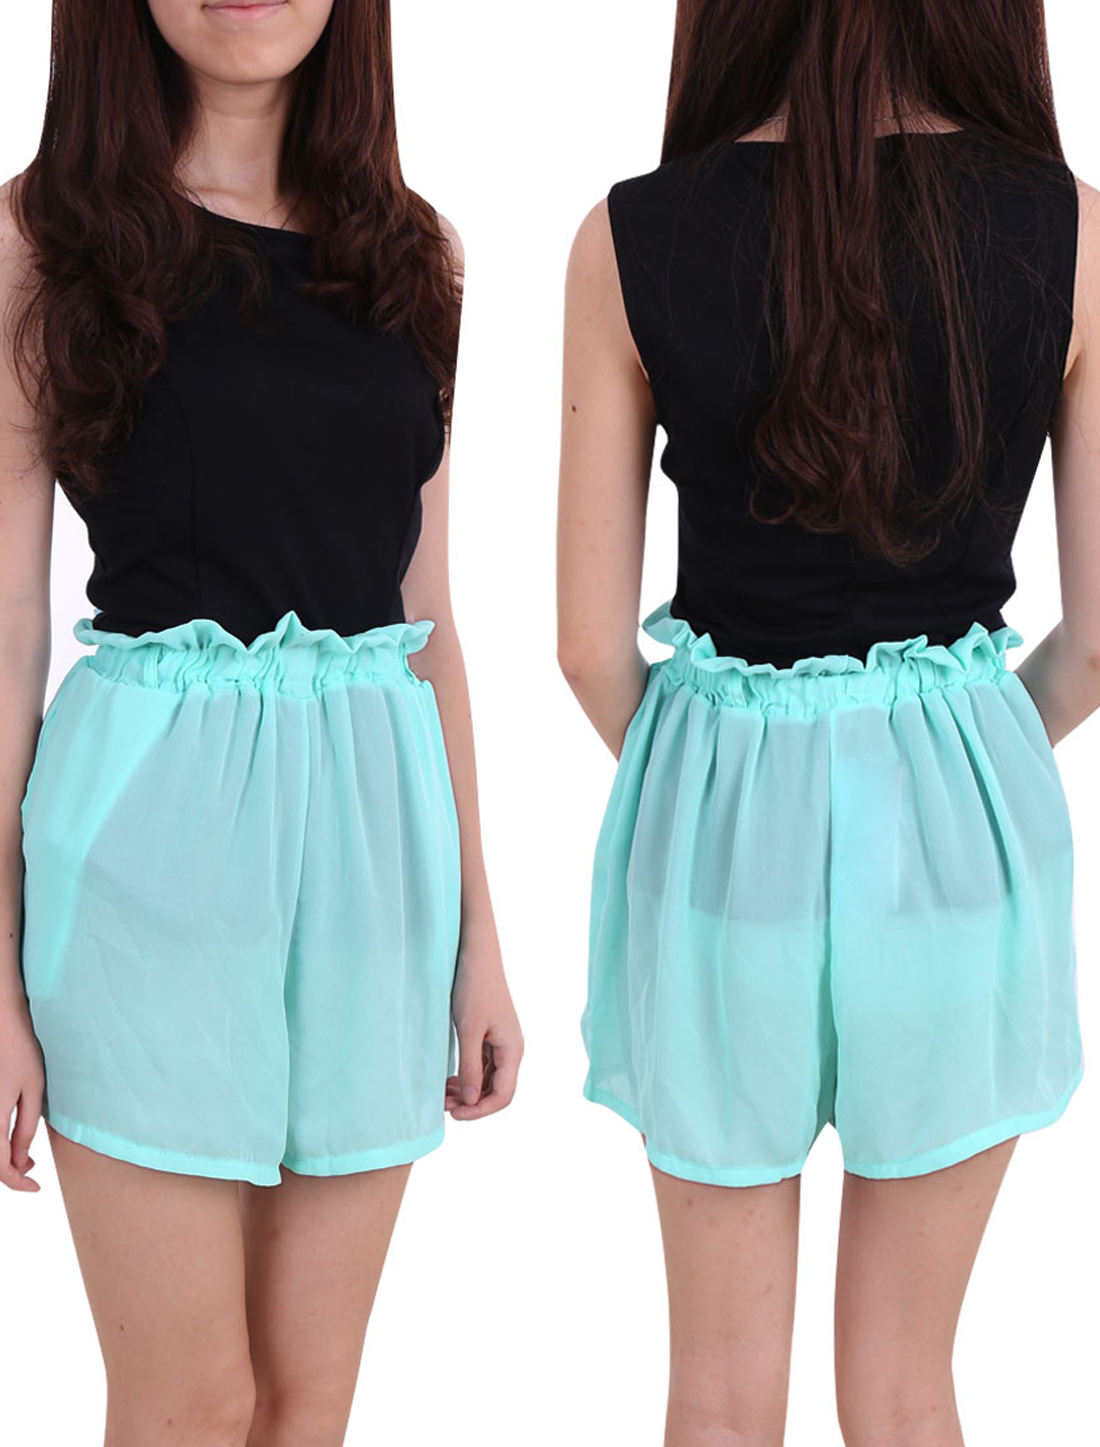 Women Ruffled Elastic High Waist Chiffon Mini Shorts Green XS